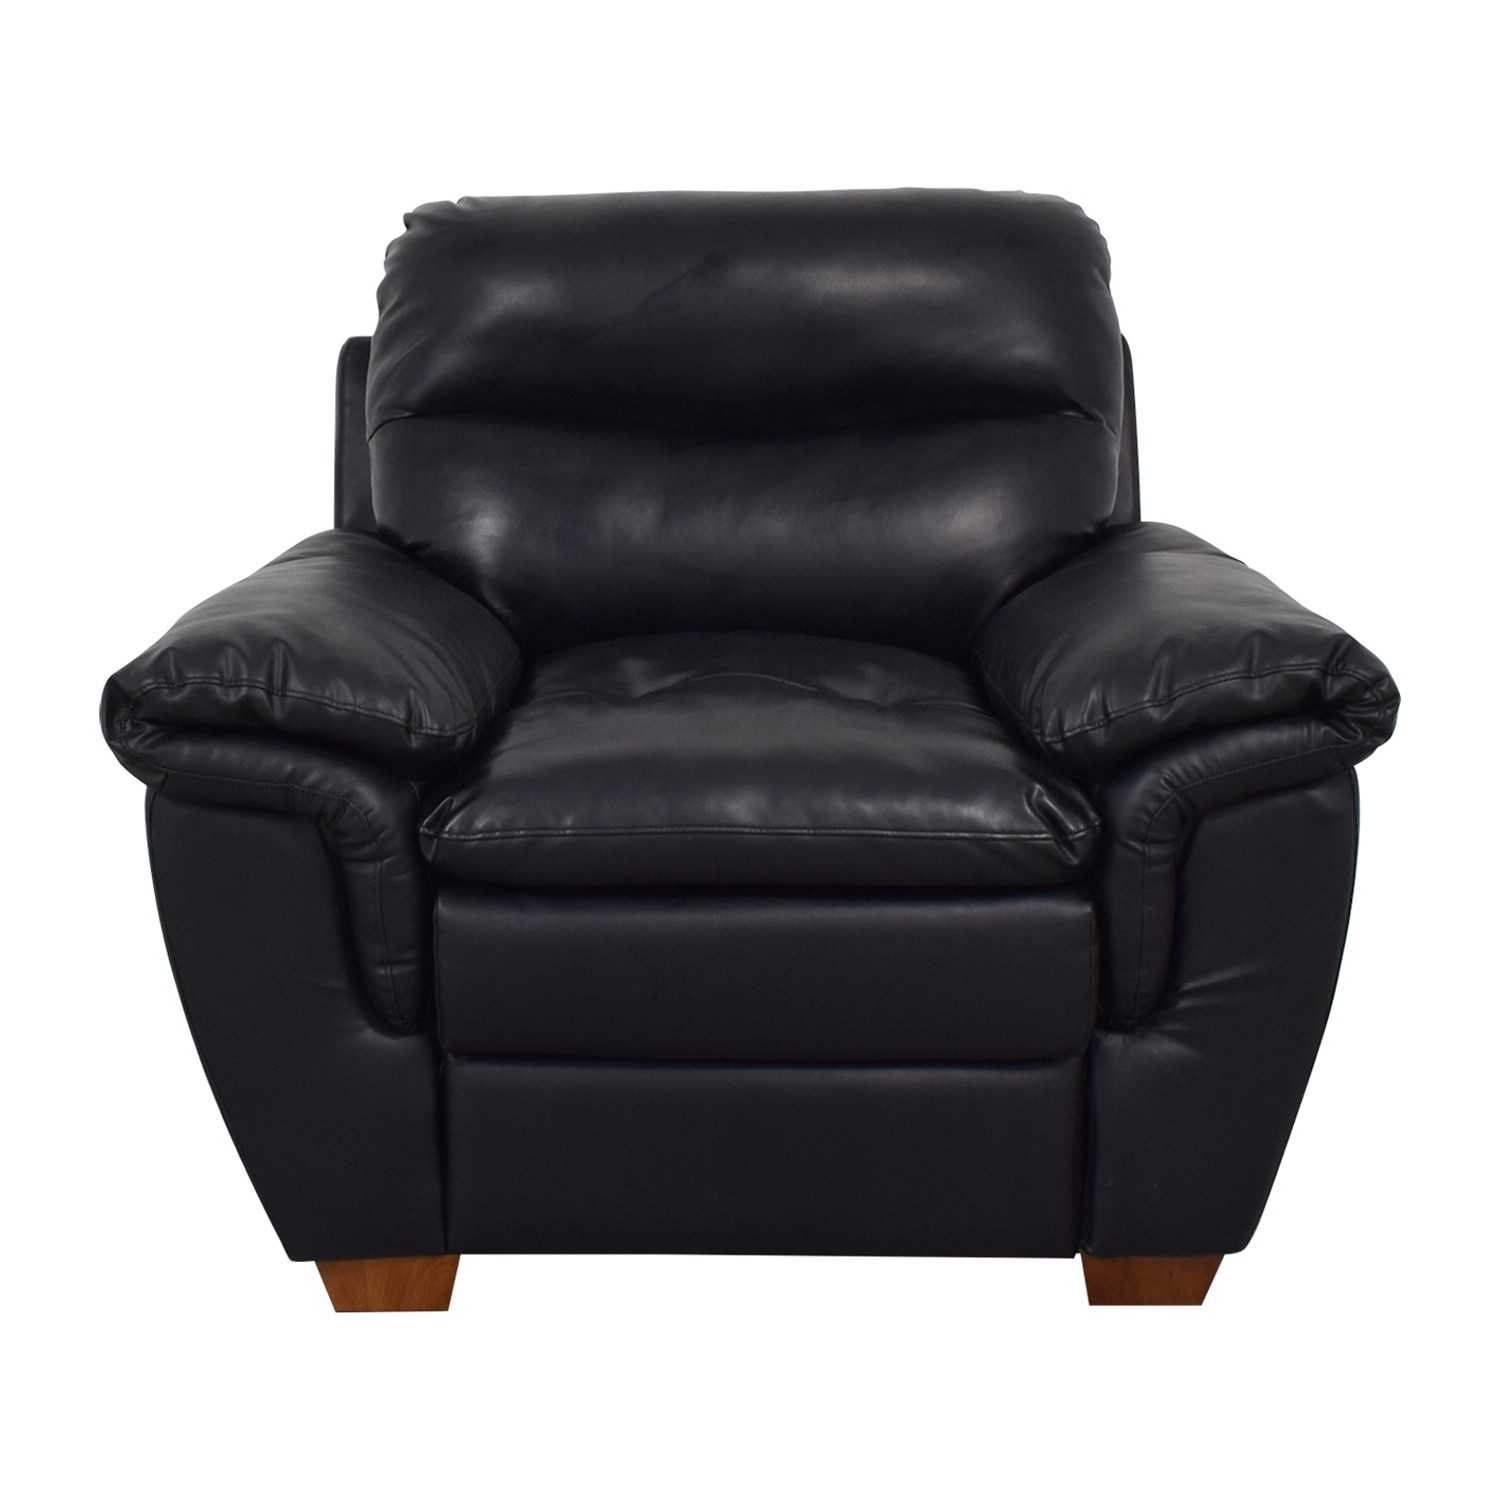 Jennifer Furniture Jennifer Furniture Wilton Black Accent Chair second hand